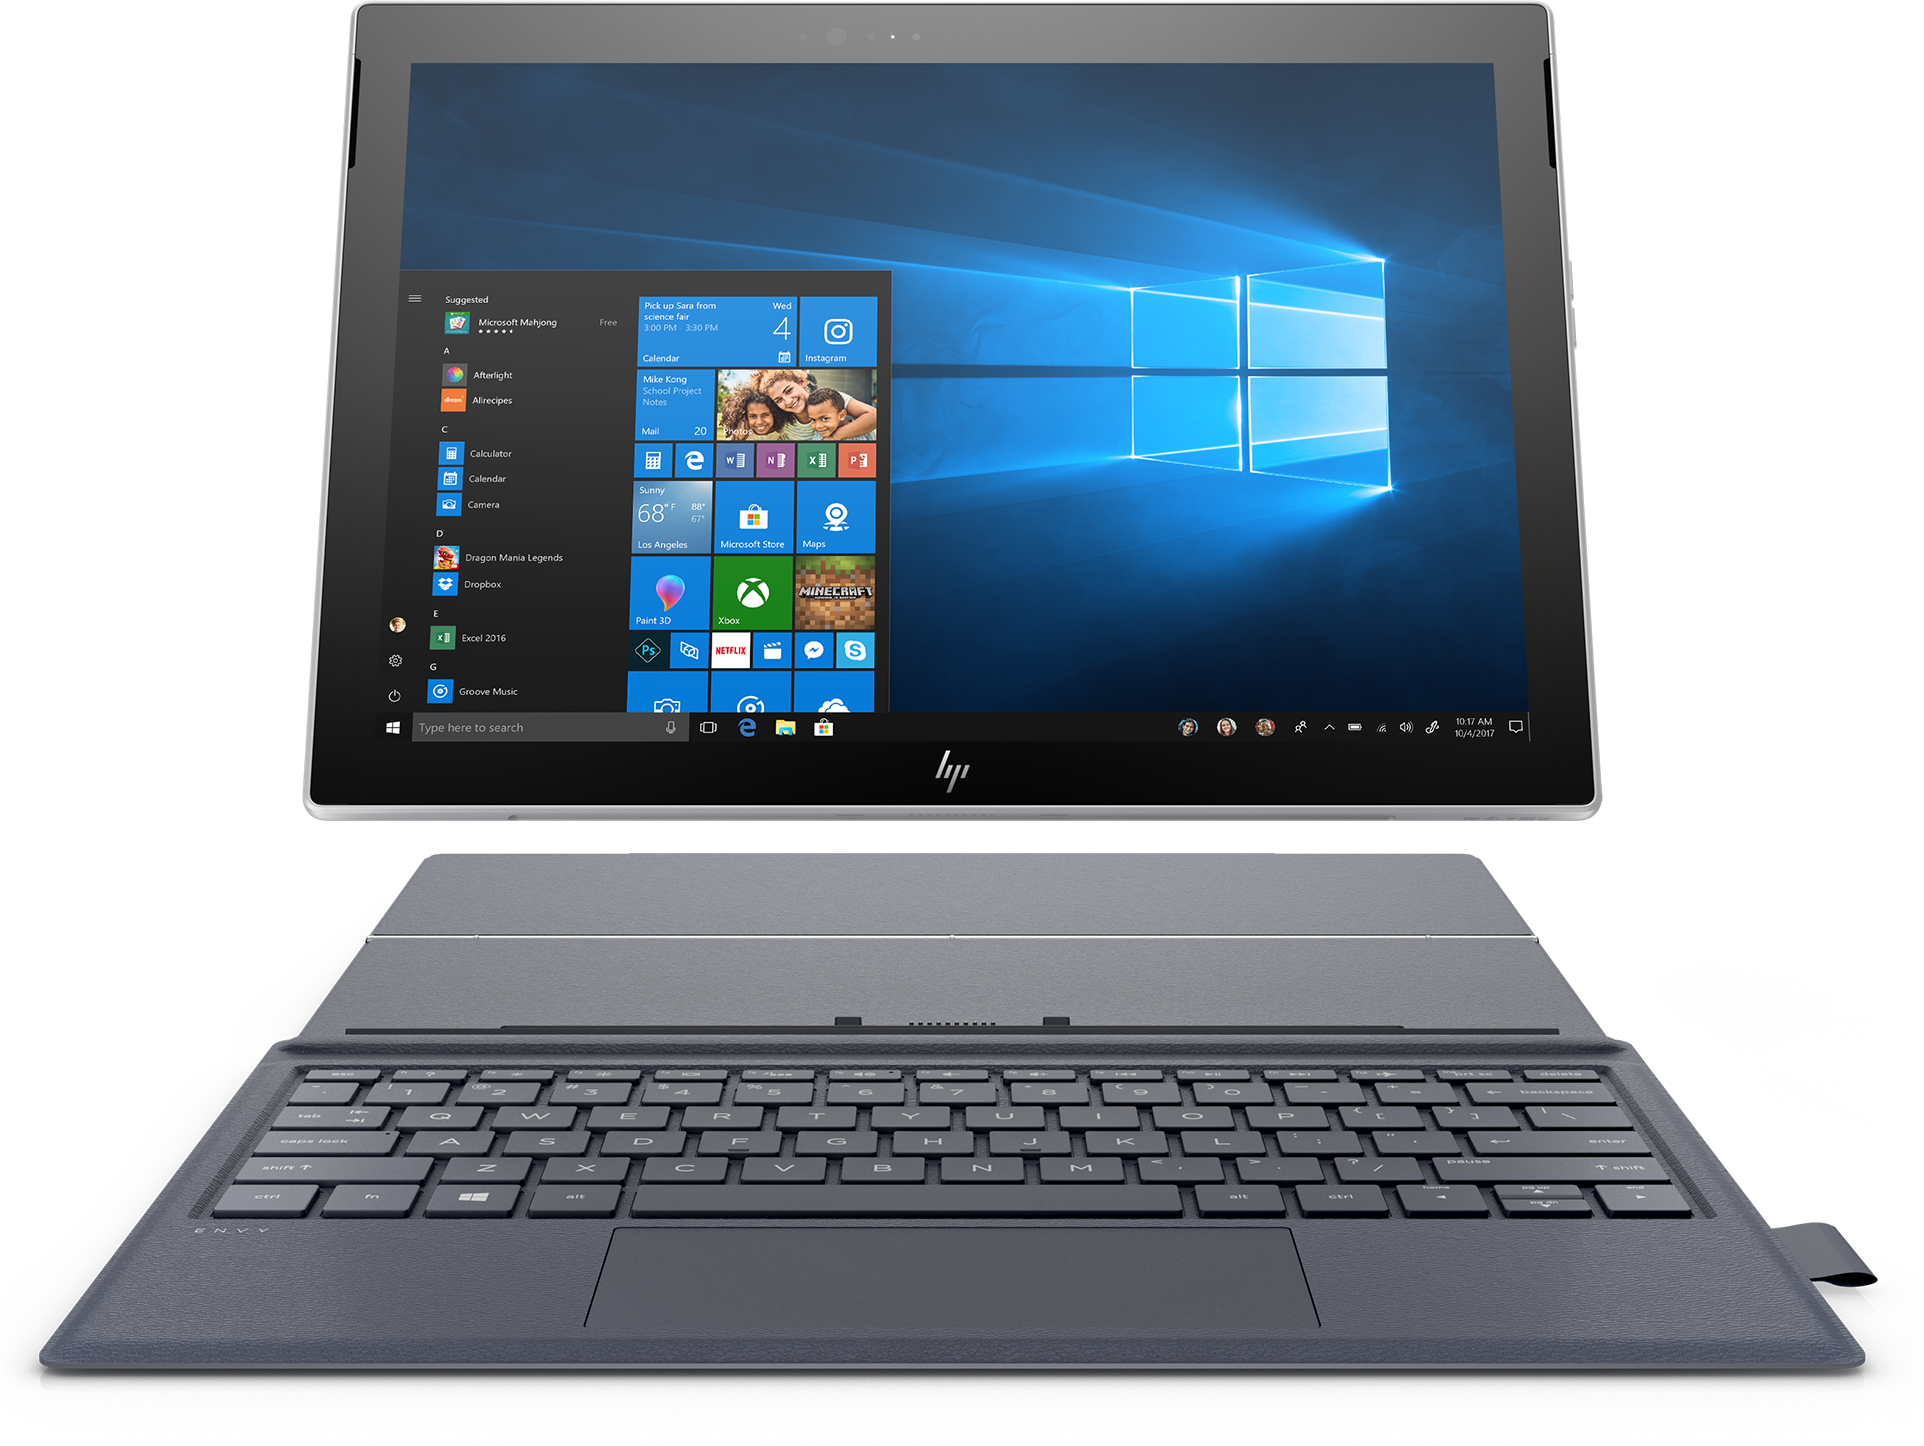 HP Envy PC with a detached keyboard